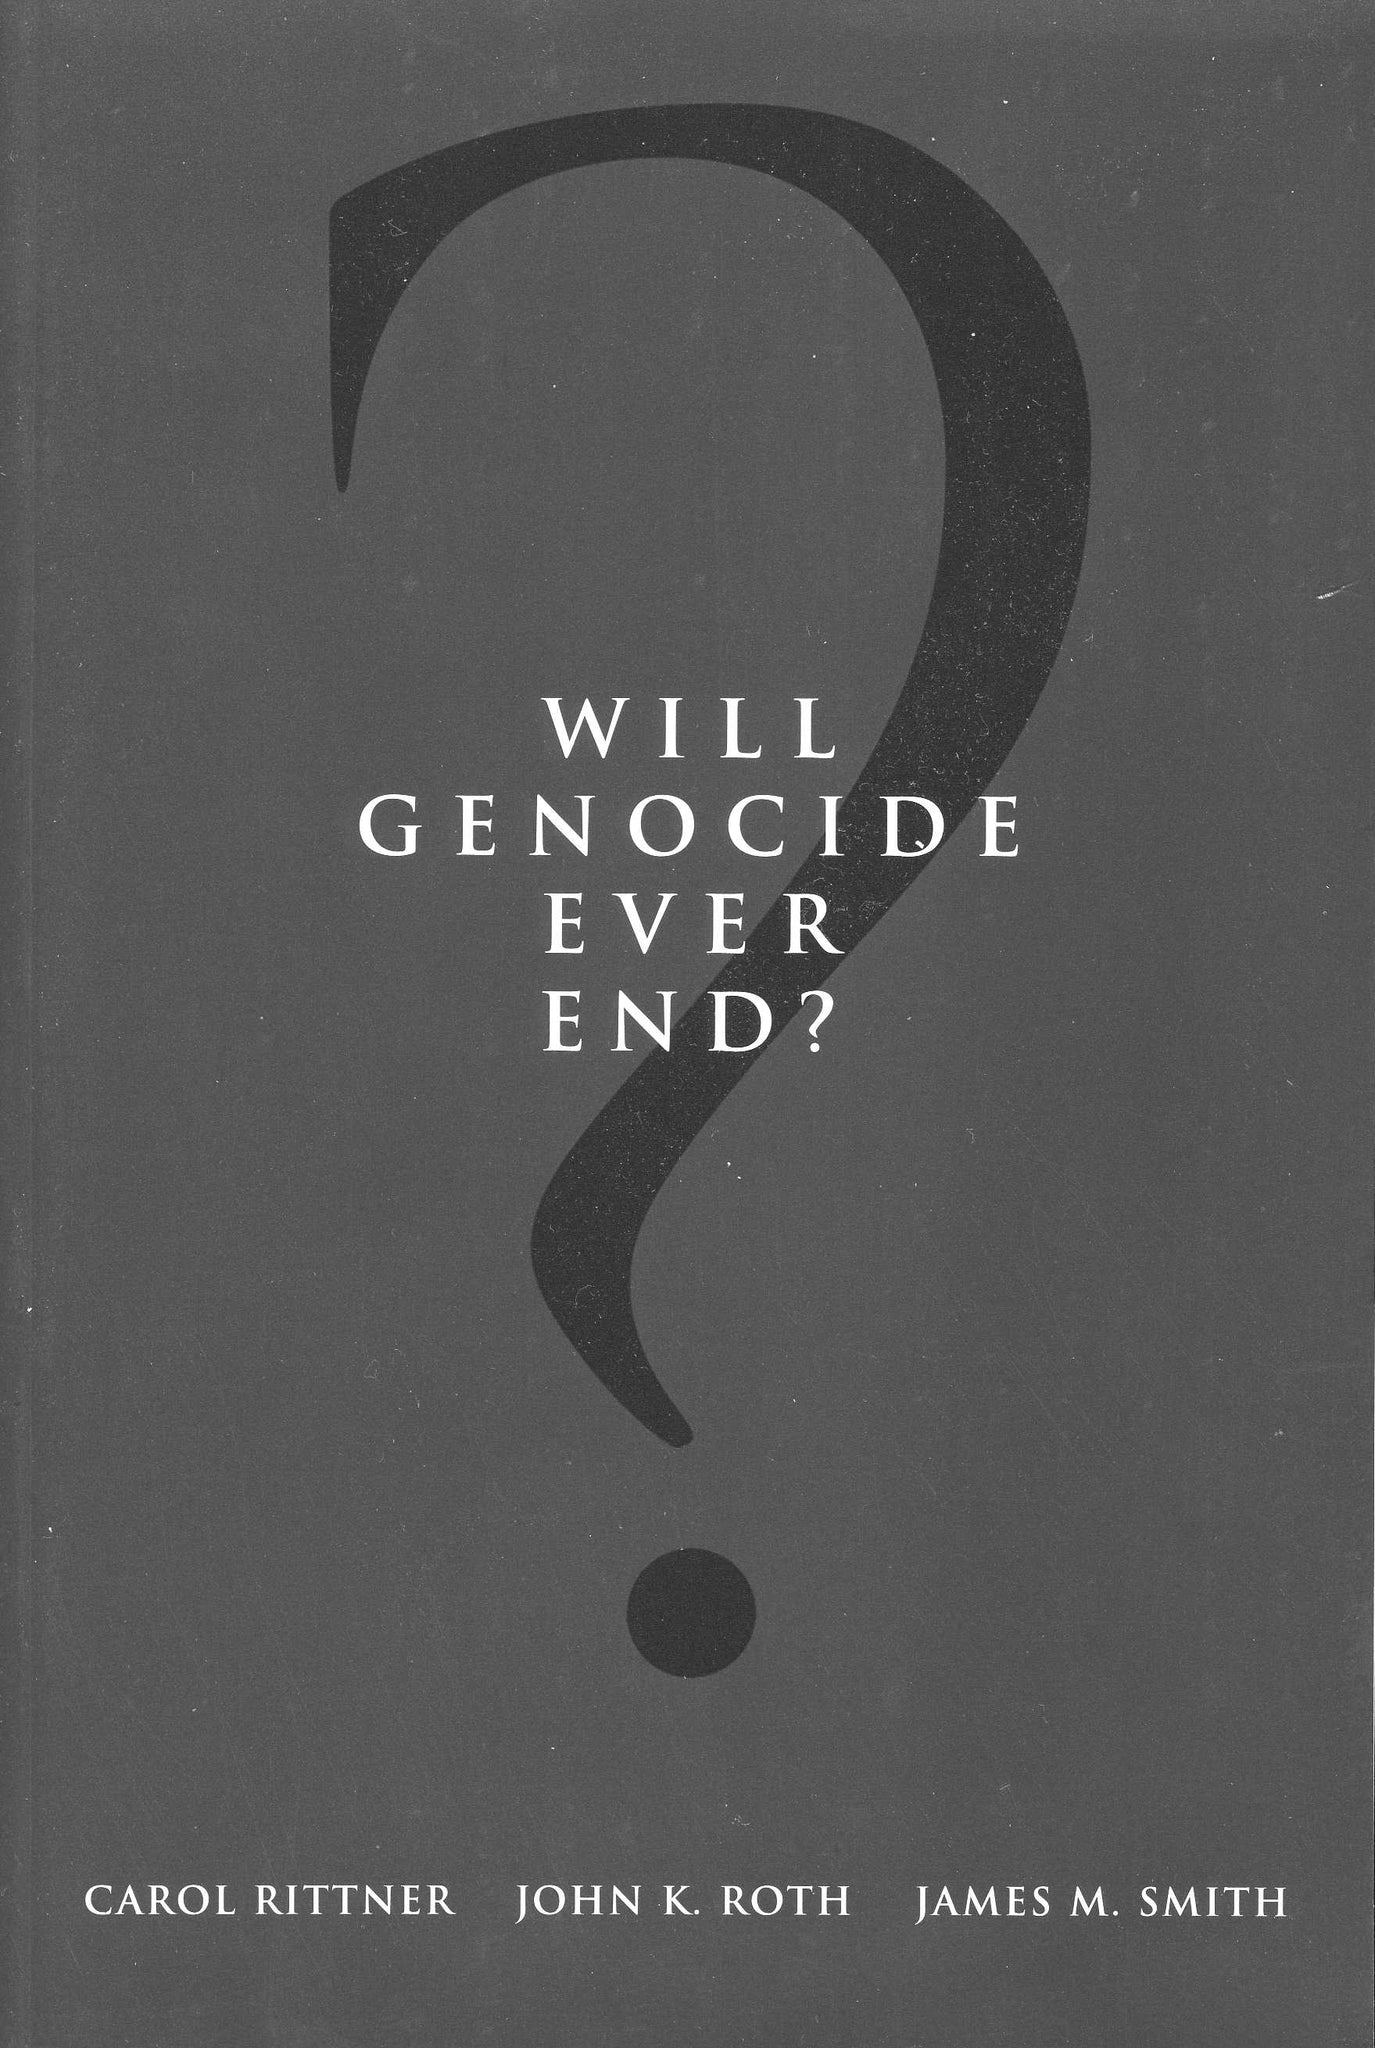 WILL GENOCIDE EVER END?